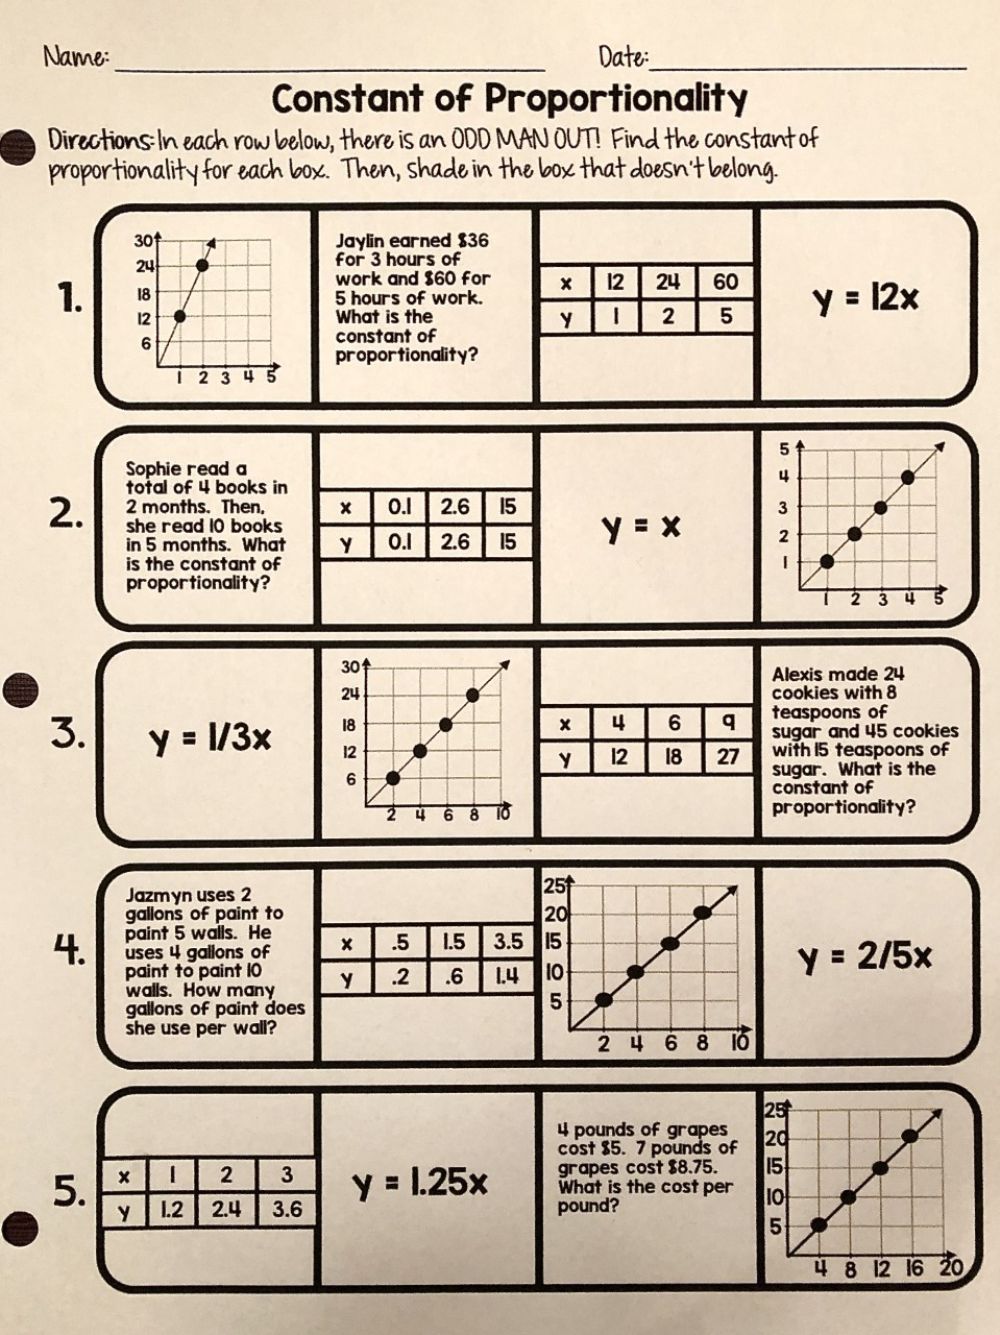 medium resolution of Constant of Proportionality - Odd Man Out worksheet